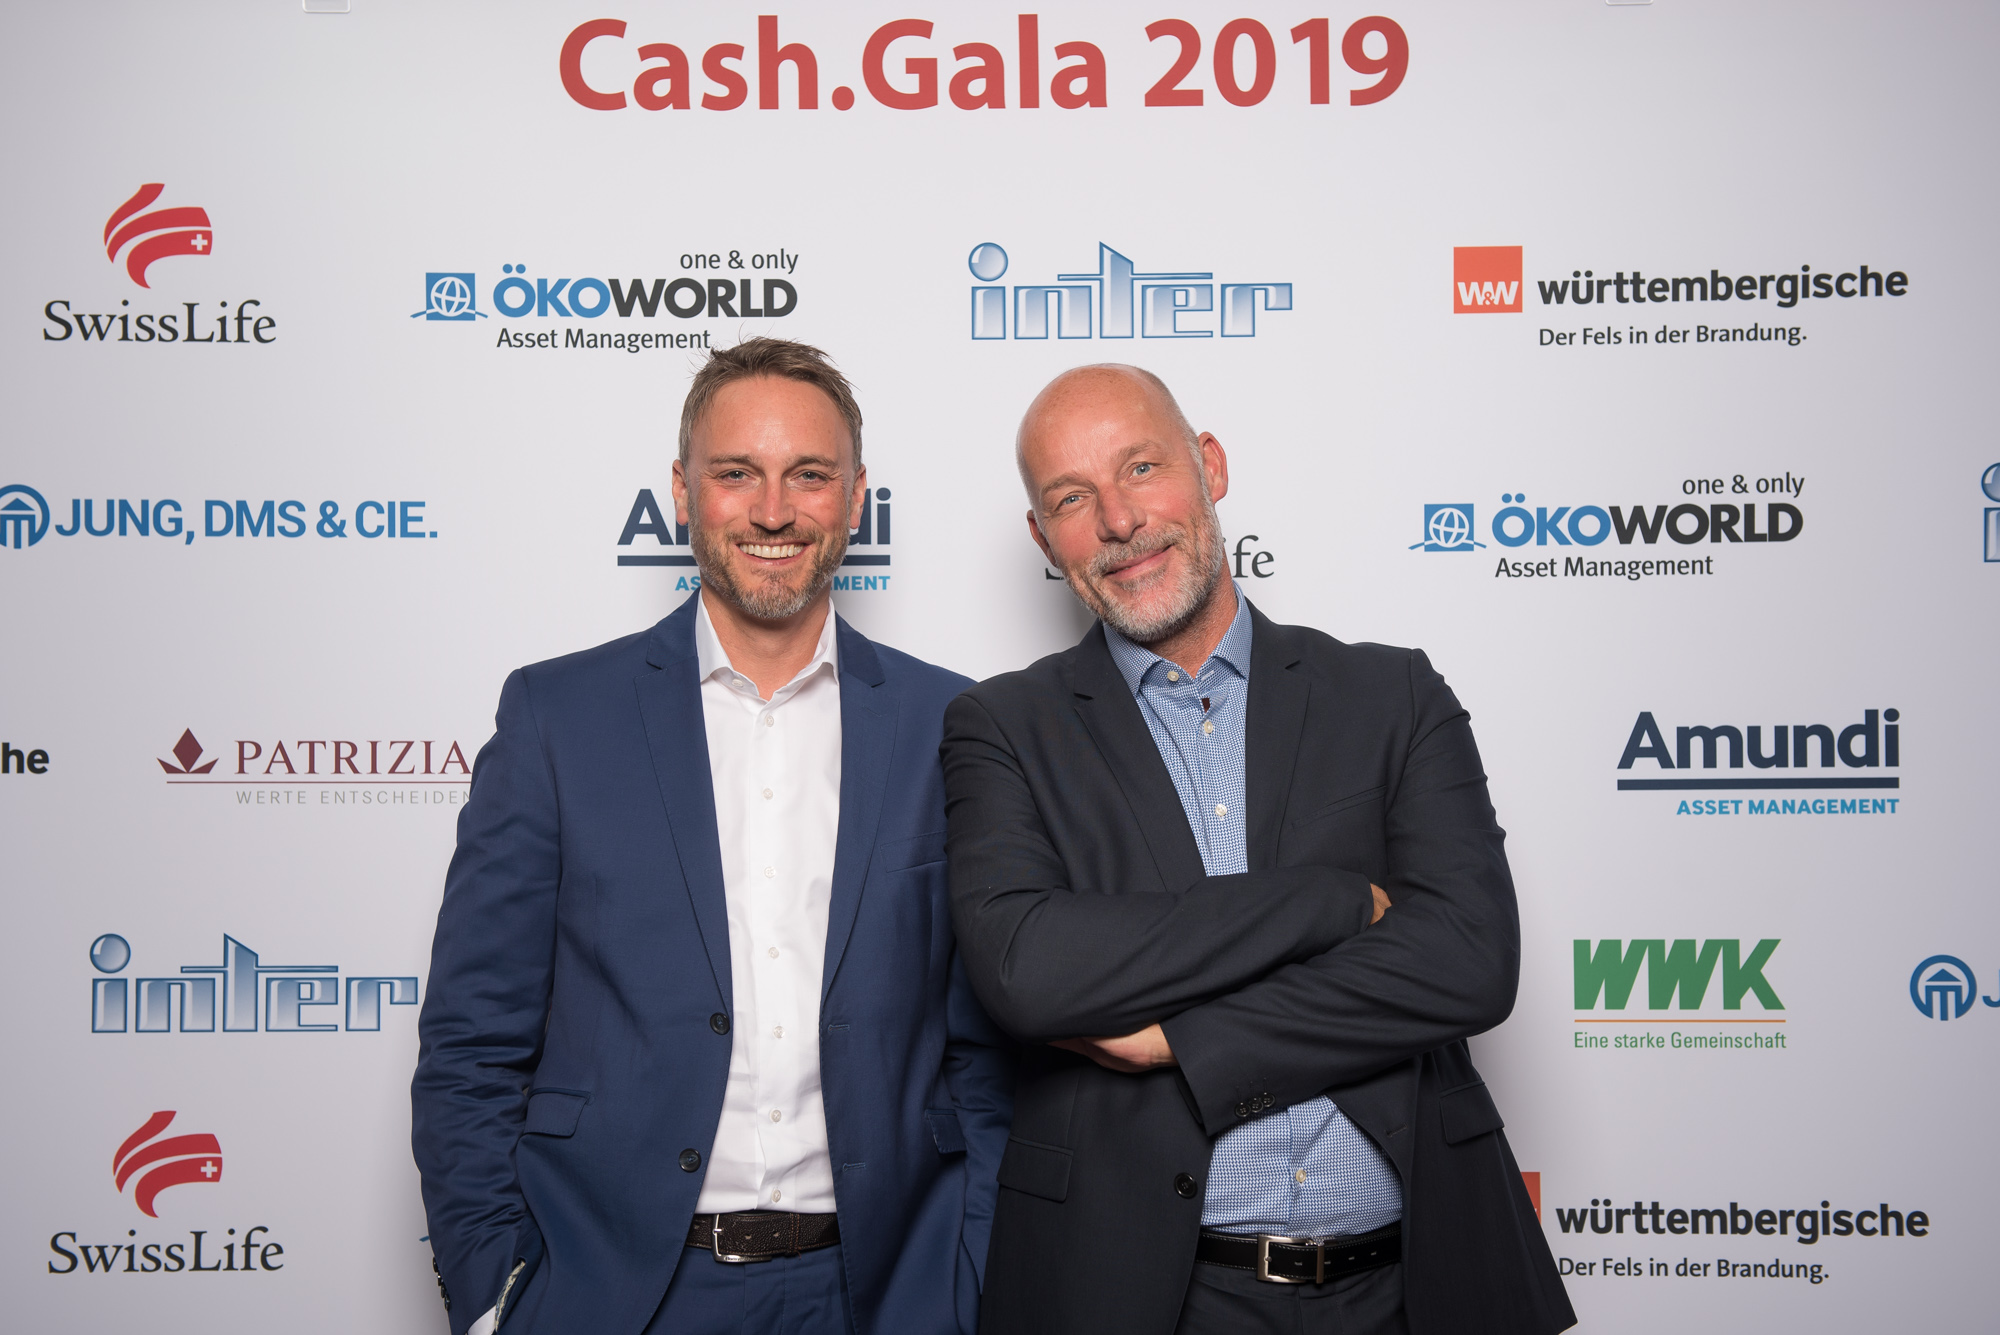 CashGala 2019 0027 AM DSC7021 in Cash.Gala 2019